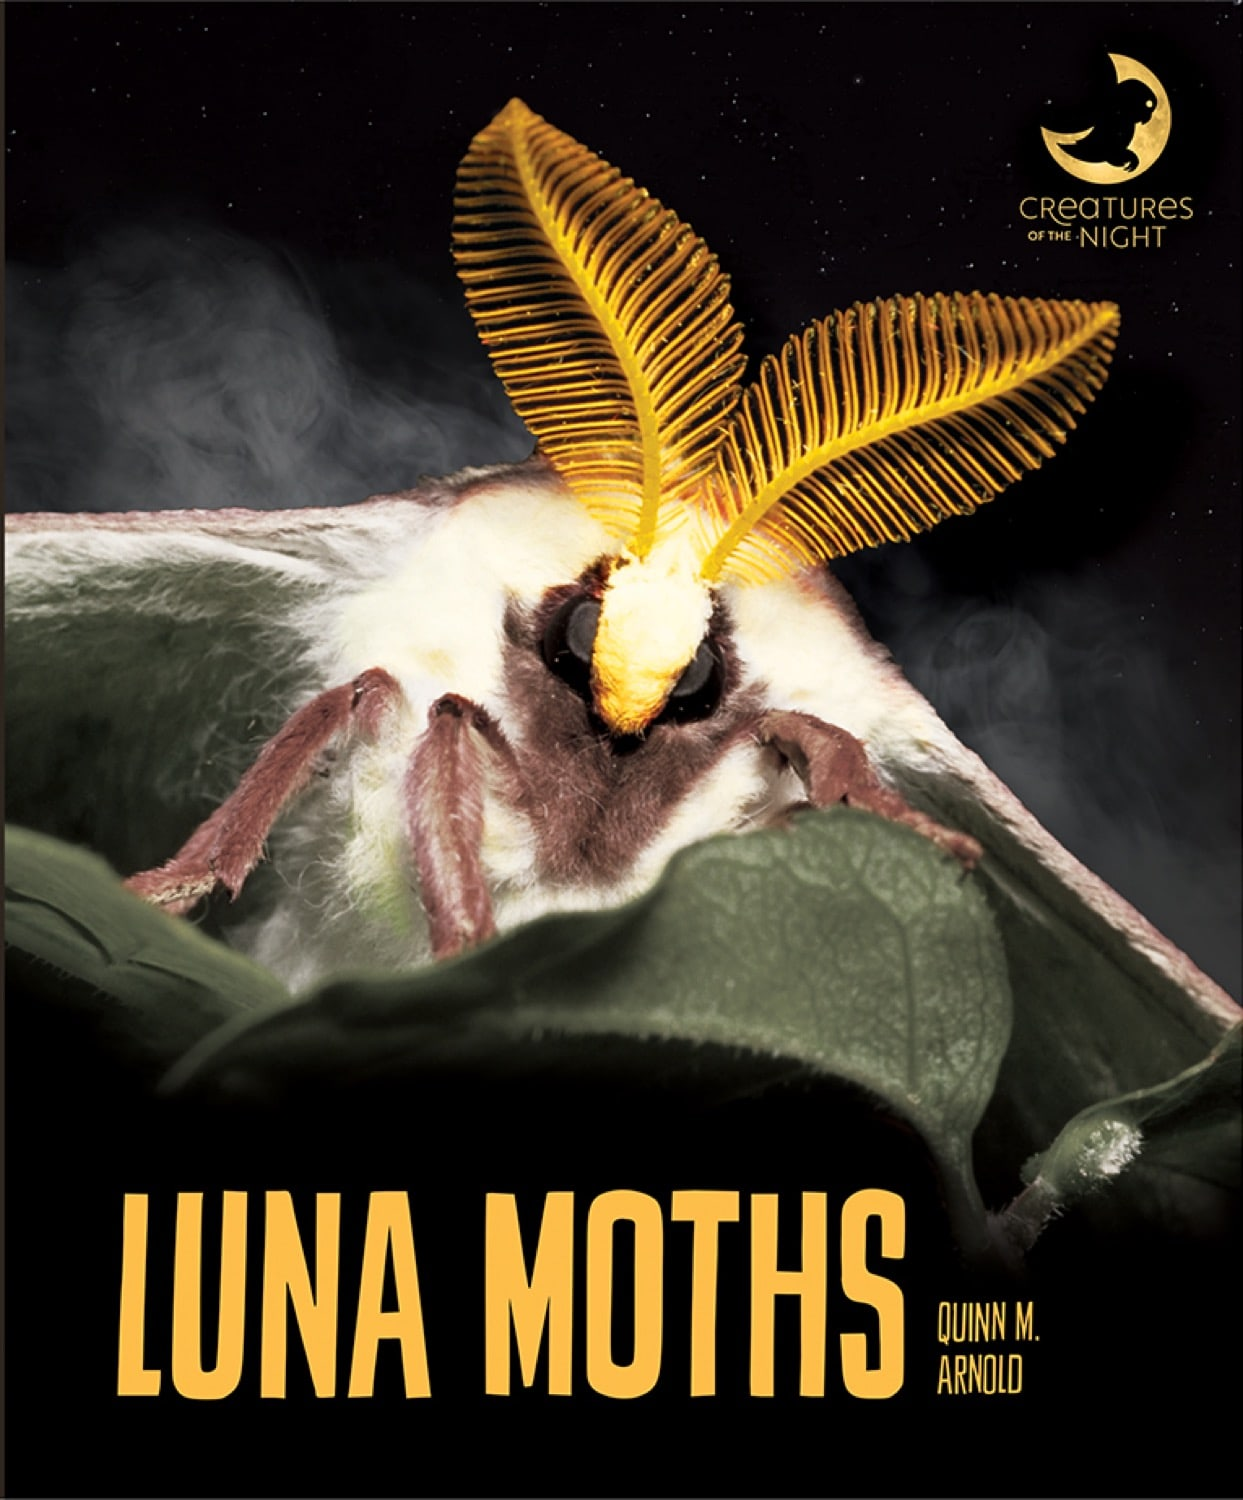 Creatures of the Night: Luna Moths